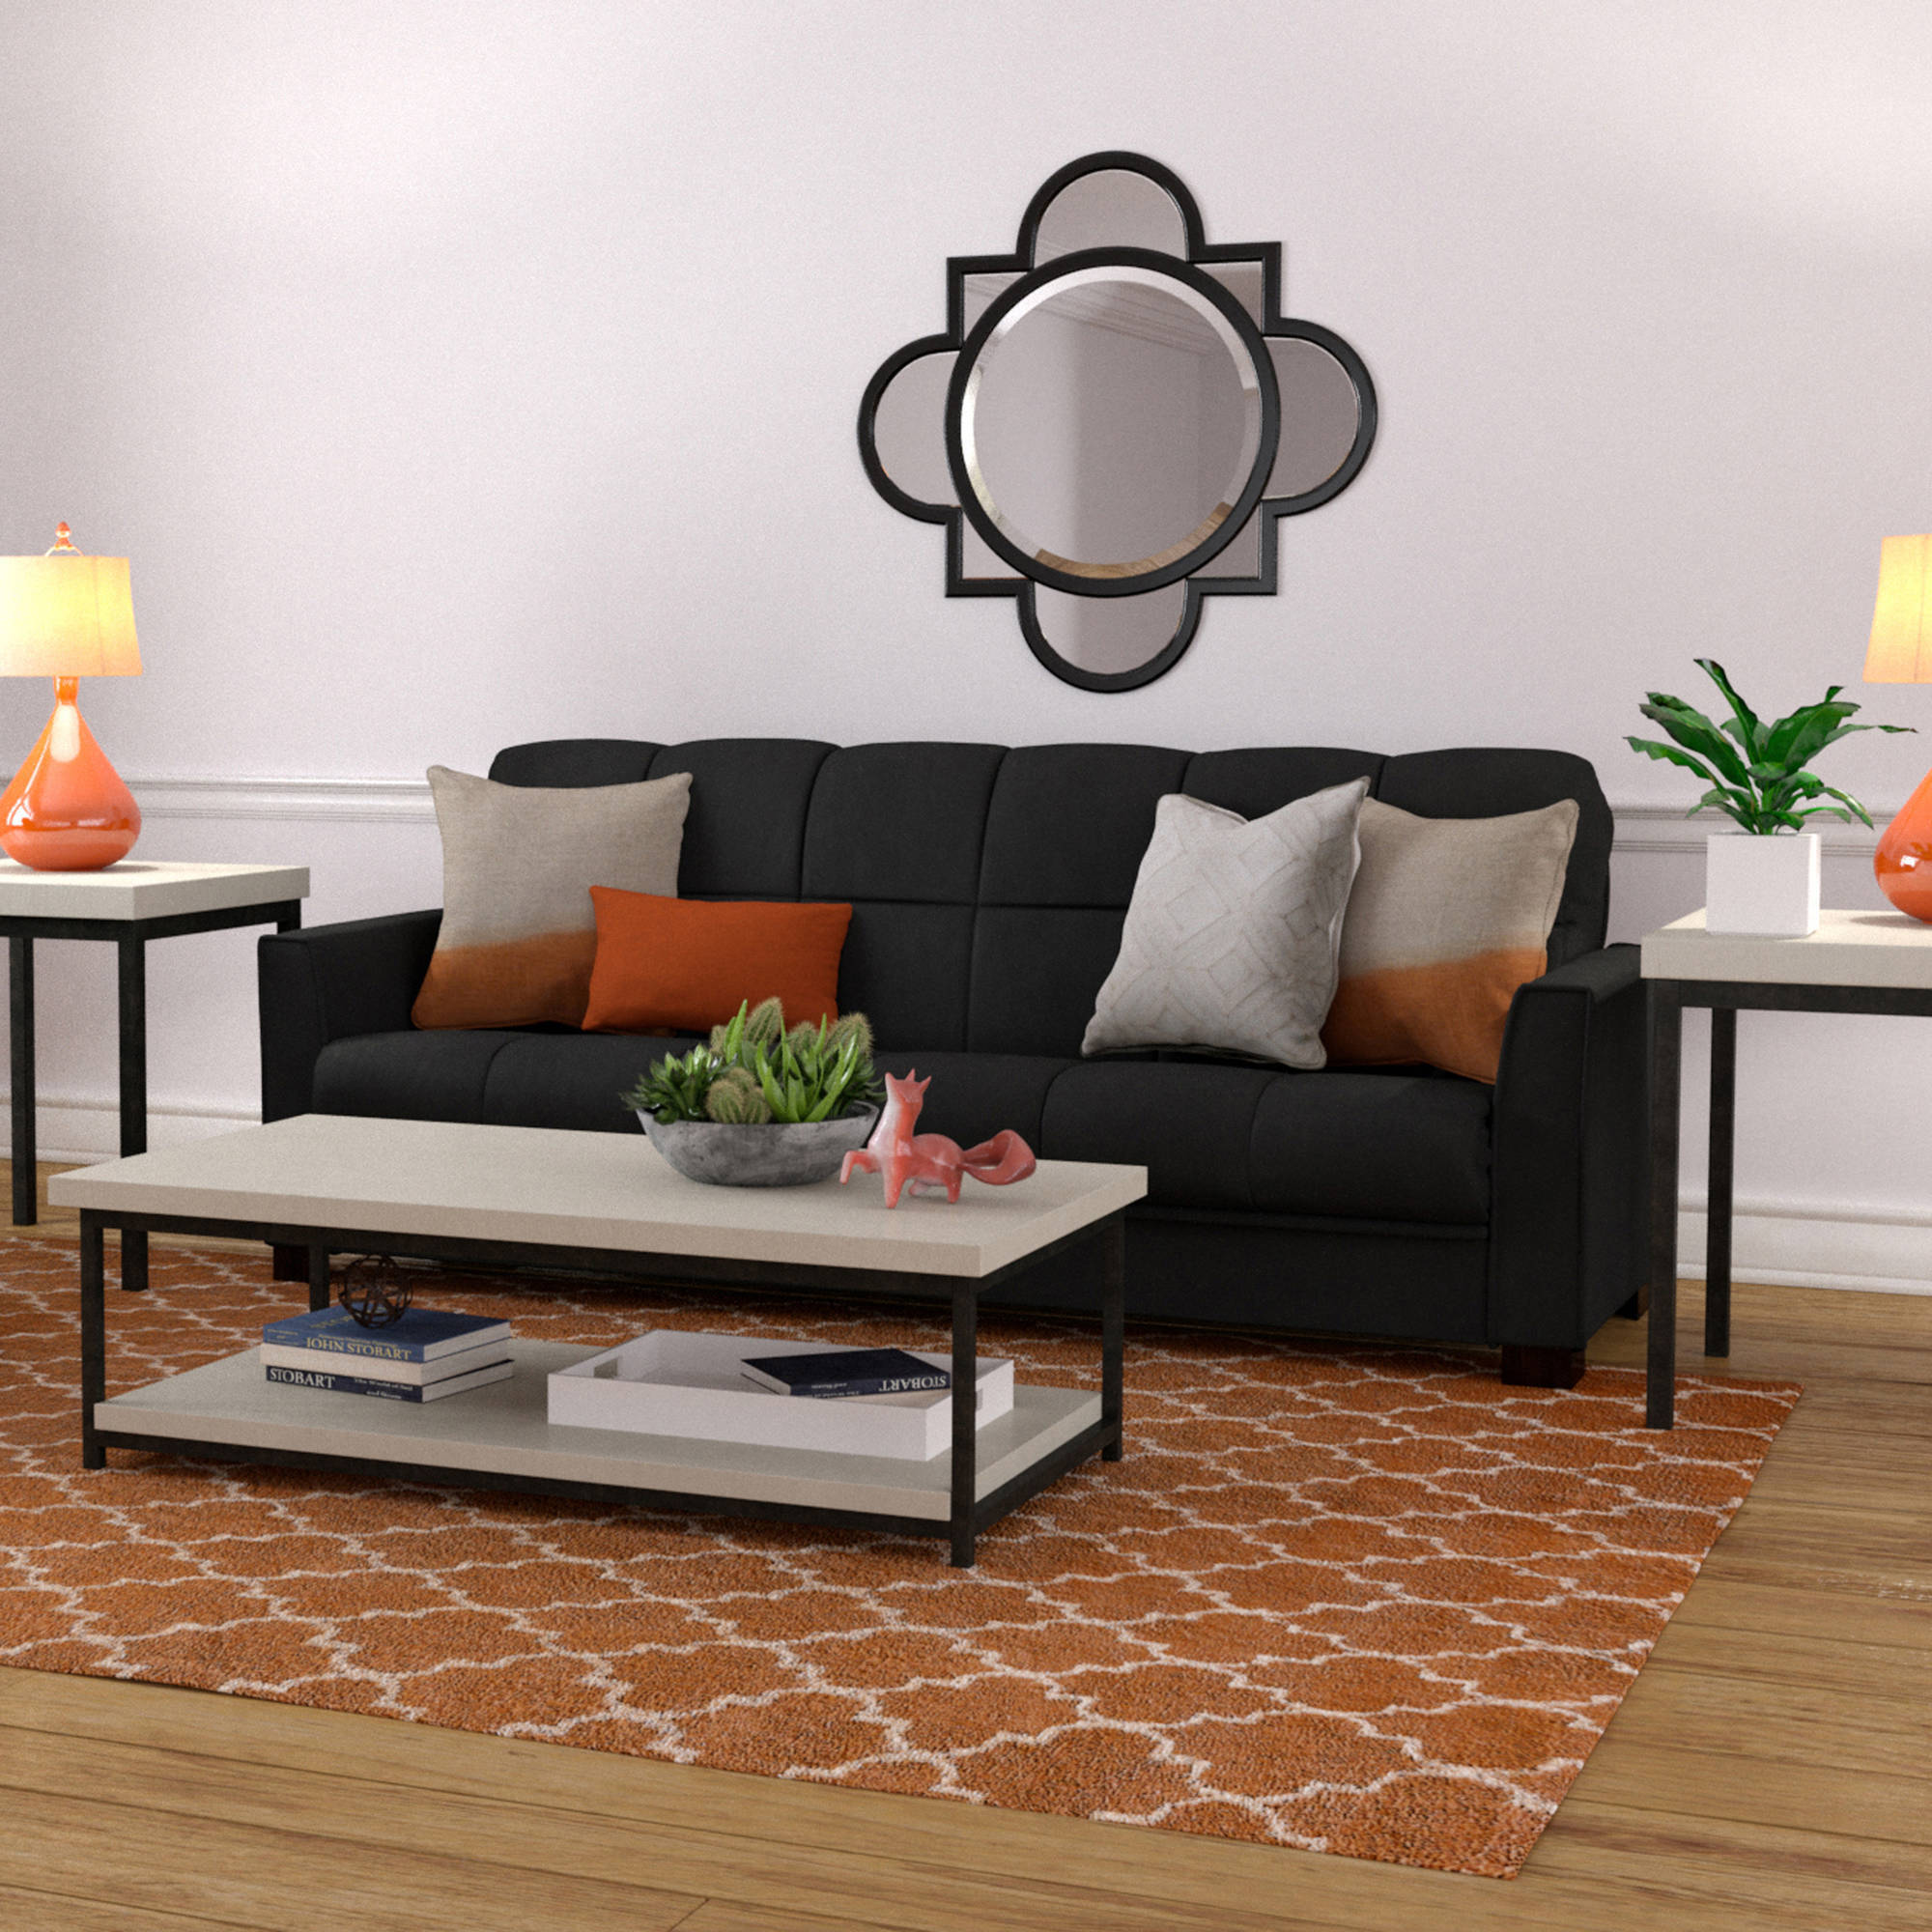 sleeper sofa bad credit sectional with wood trim baja convert-a-couch bed, multiple colors ...